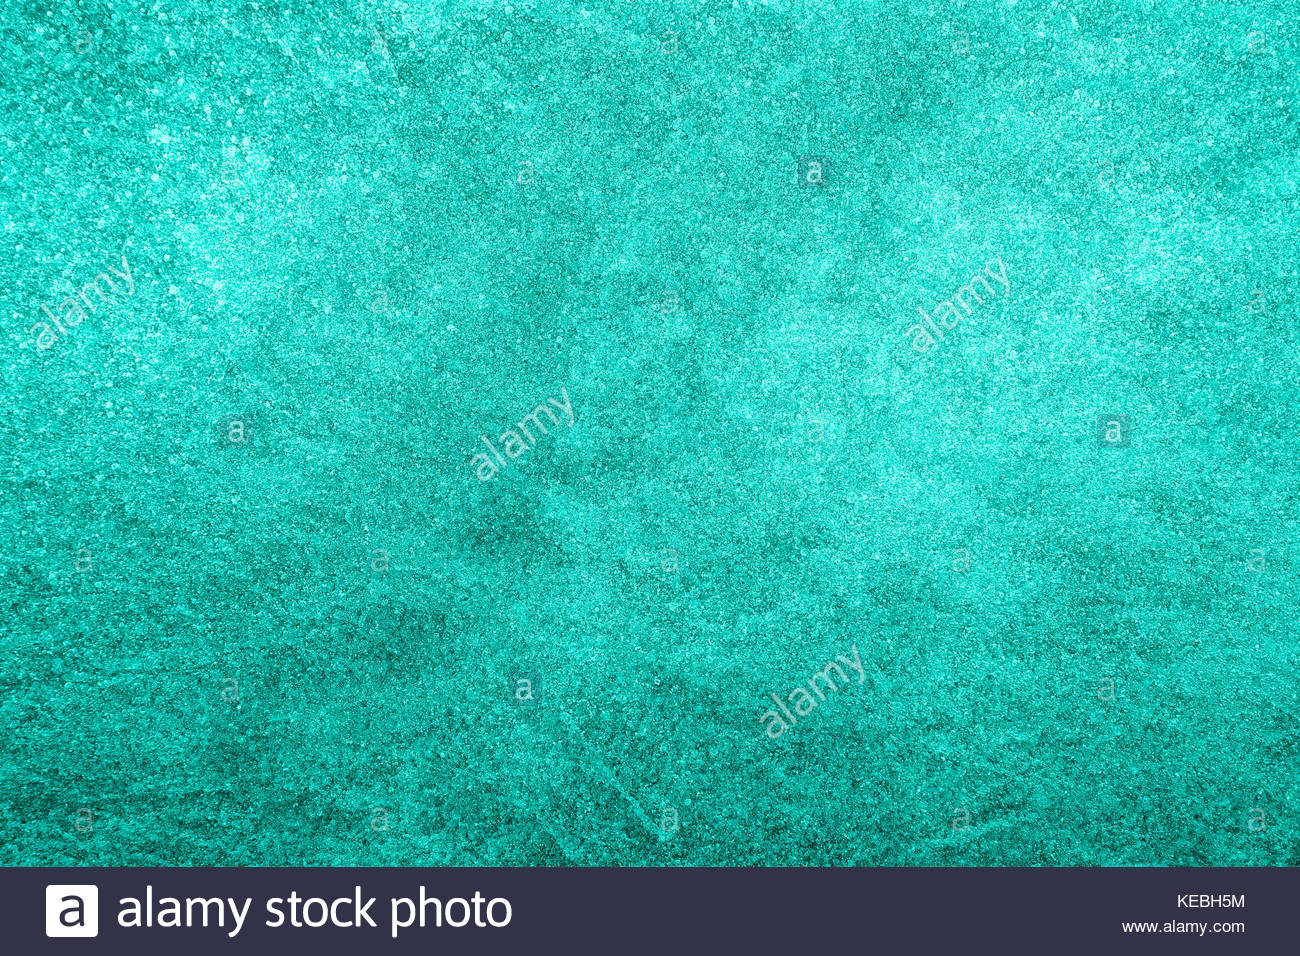 Azure blue color abstract ice texture copy space background. - Stock Image